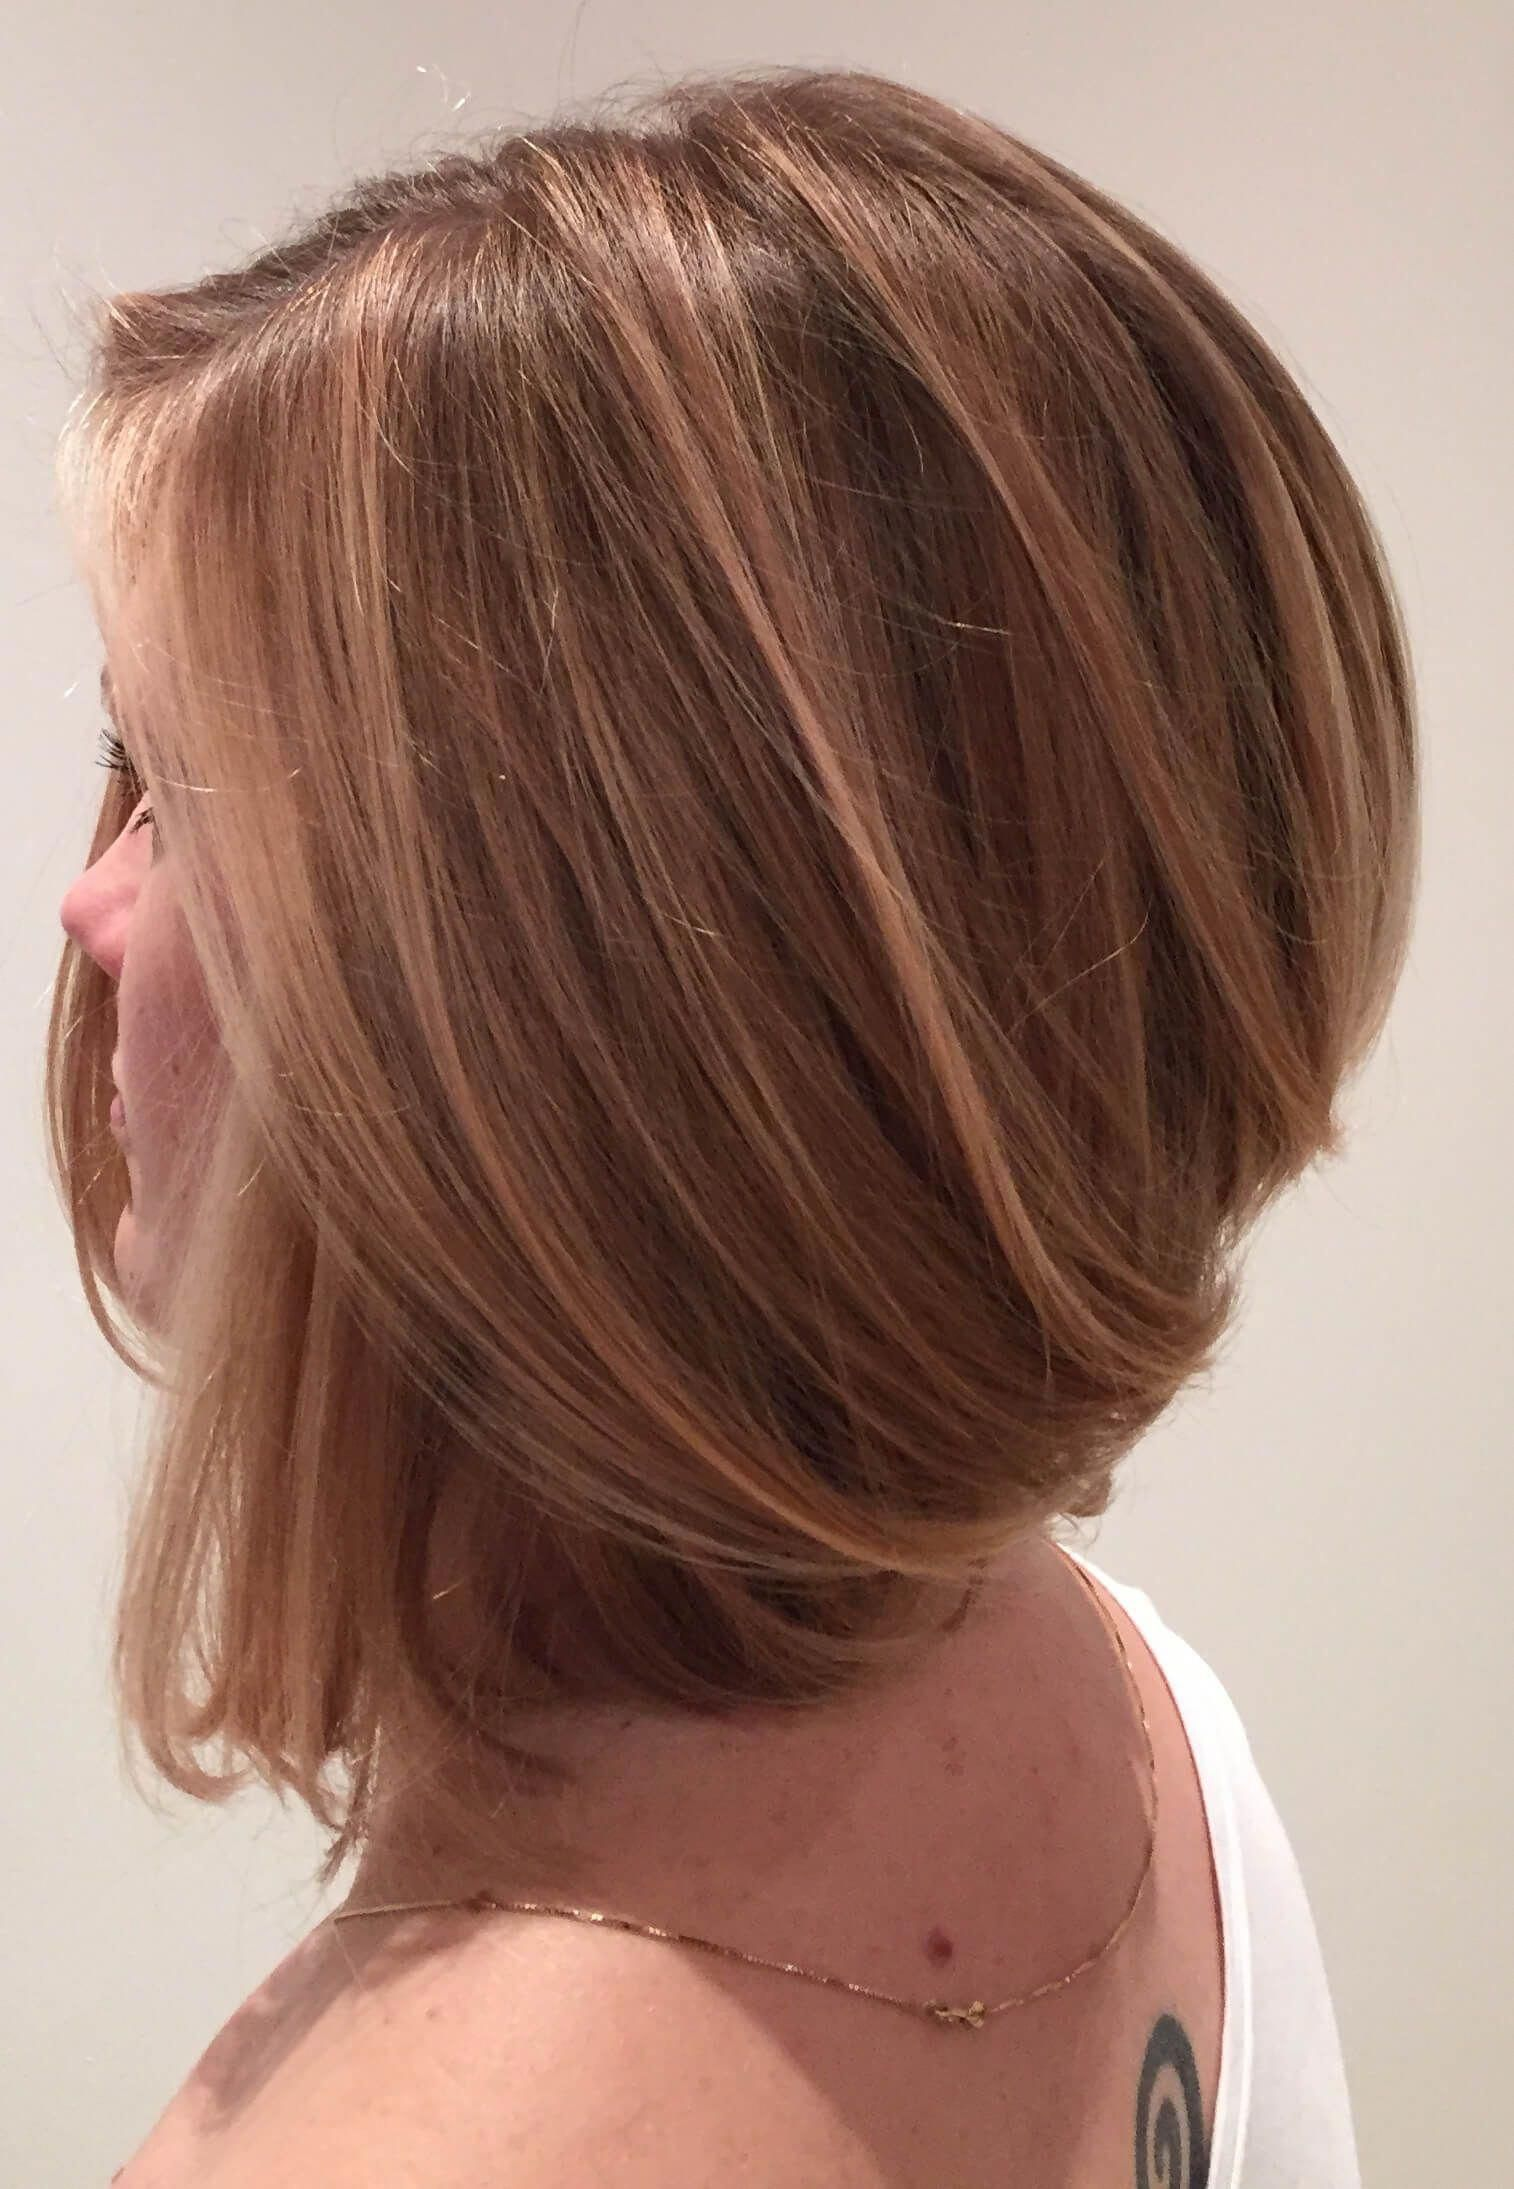 Concave Bob Longhairstylesforfinehair Concave Bob Hairstyles Mid Length Hair Medium Length Hair Styles